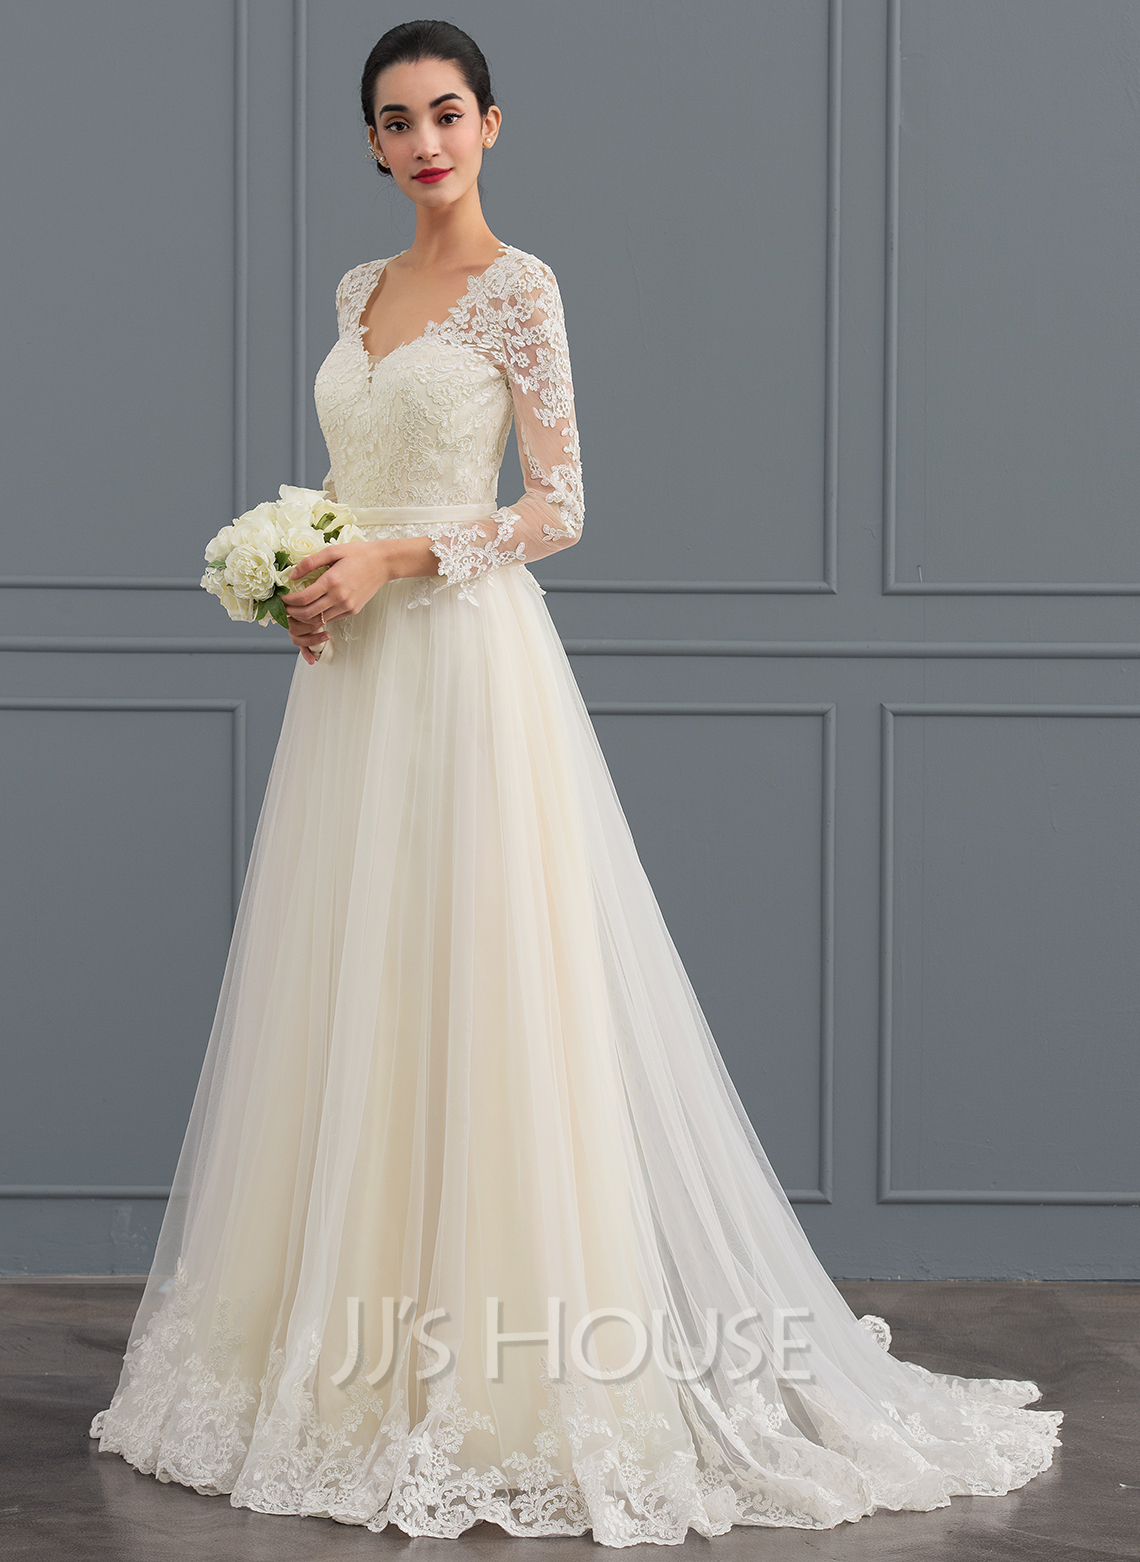 Plus Size Wedding Dresses Affordable High Quality Jjshouse